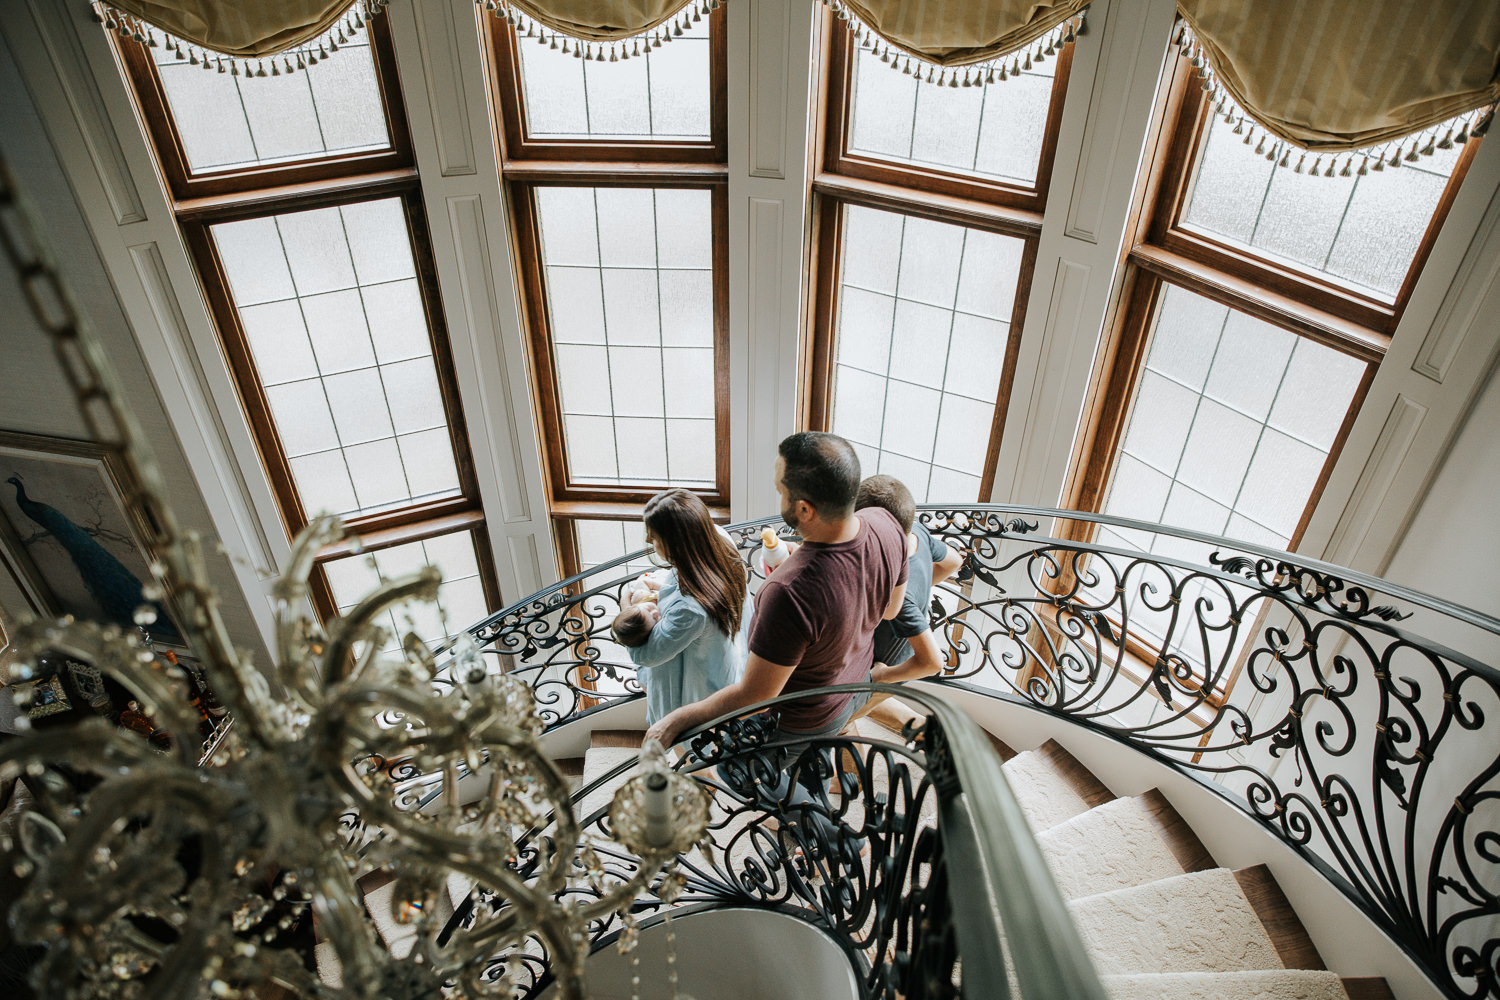 family of four walking down curved, ornate staircase, mom holding 2 month old baby girl, dad and 9 year old brother walking behind - Markham Lifestyle Photography